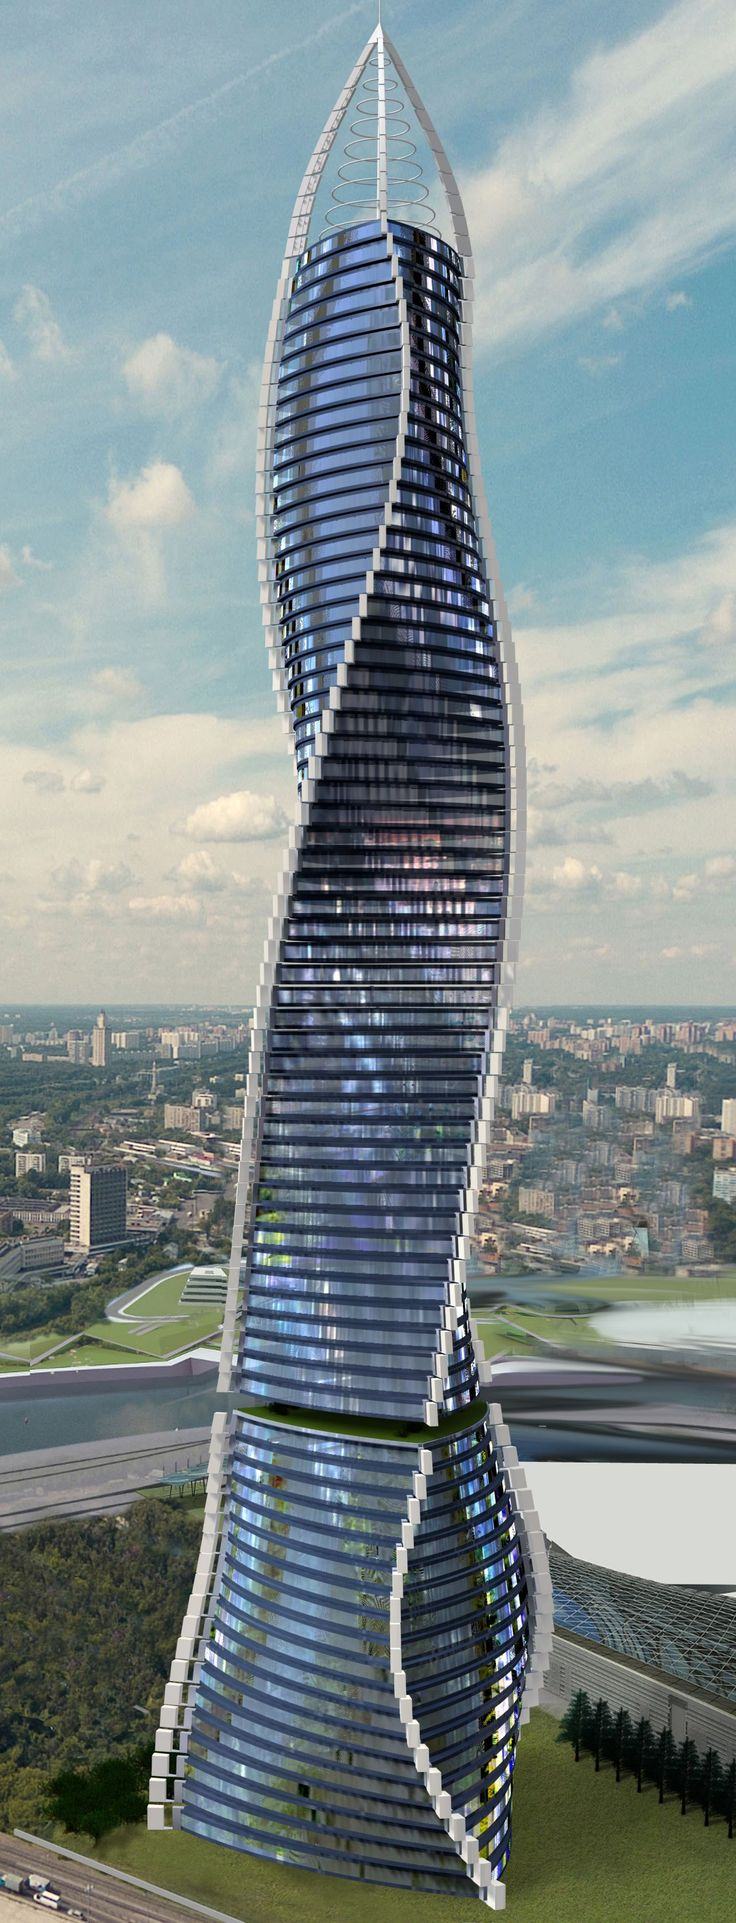 Dynamic Architecture Tower, Dubai, UAE designed by David Fisher of Dynamic Architecture :: 80 floors, hieght 388m :: vision